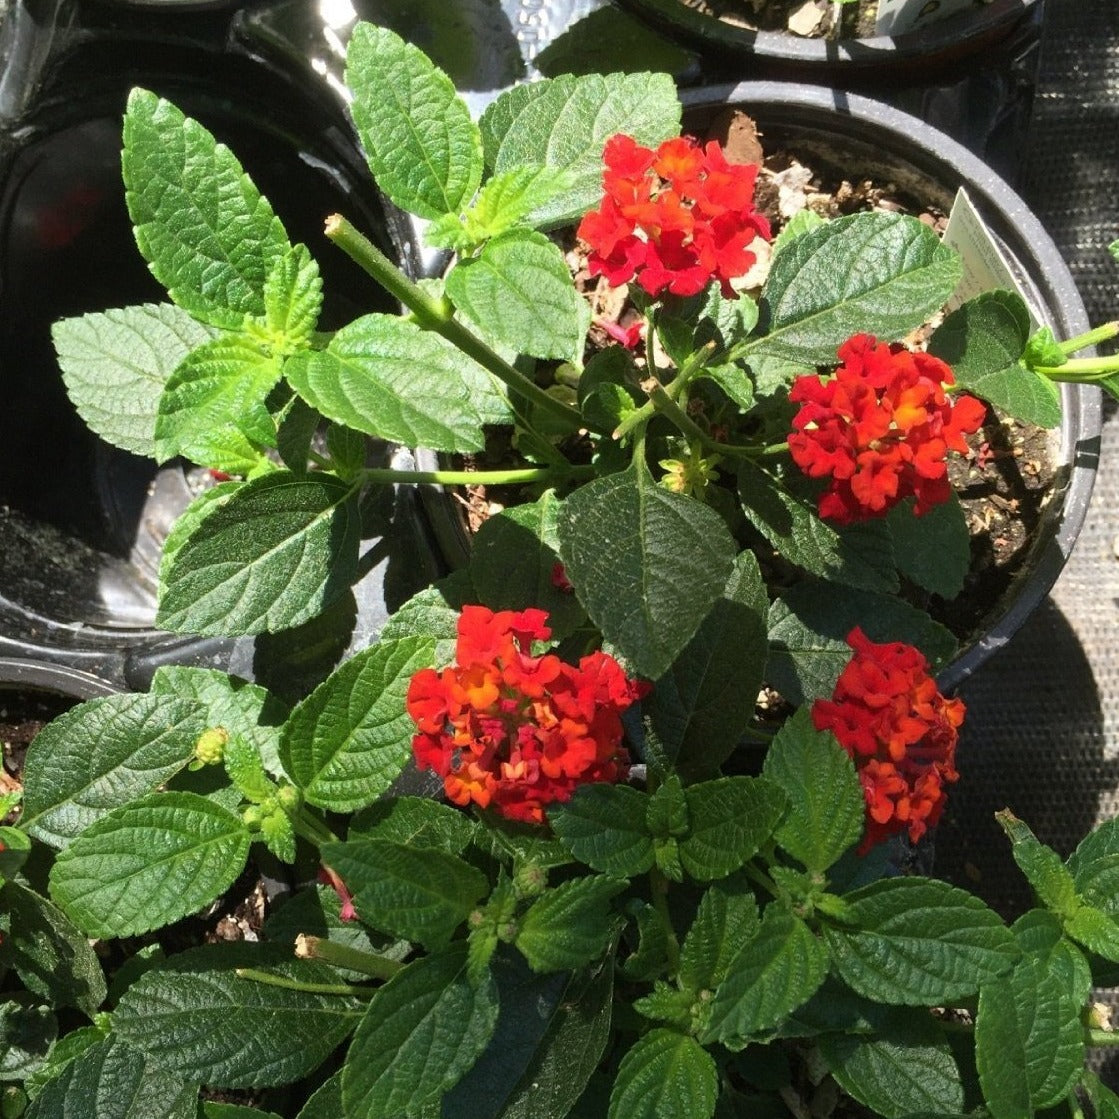 "(5"" Pot) Lantana Dallas Red' (Groundcover) - Brilliant Blooms of Fiery Red, Yellow and Orange Flowers. Constant Bloomers"